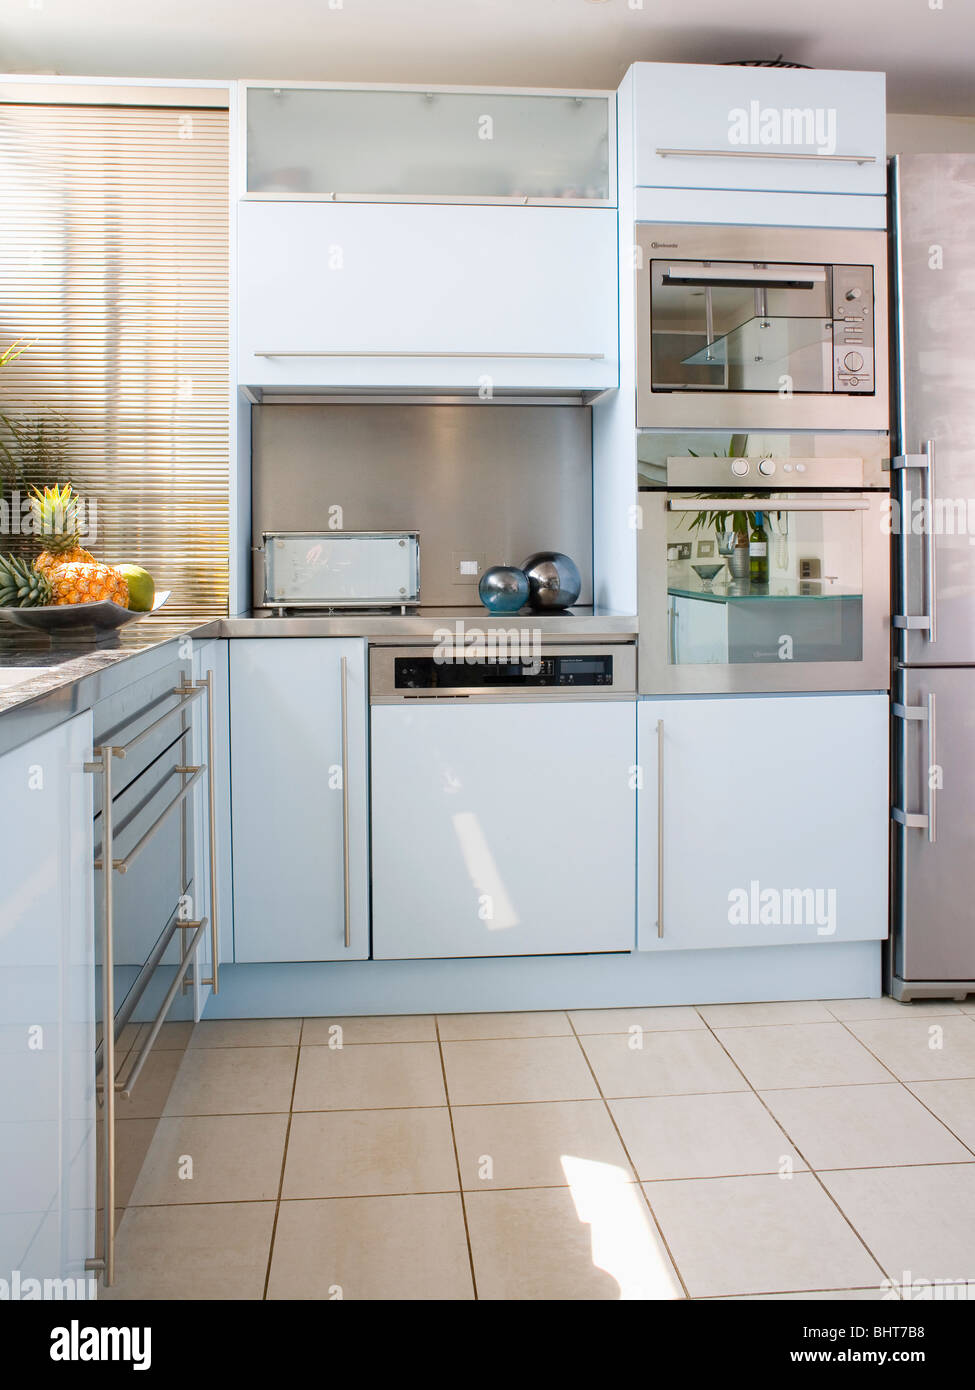 Stainless steel double oven and fitted dishwasher in modern white stainless steel double oven and fitted dishwasher in modern white kitchen with cream ceramic floor tiles dailygadgetfo Image collections